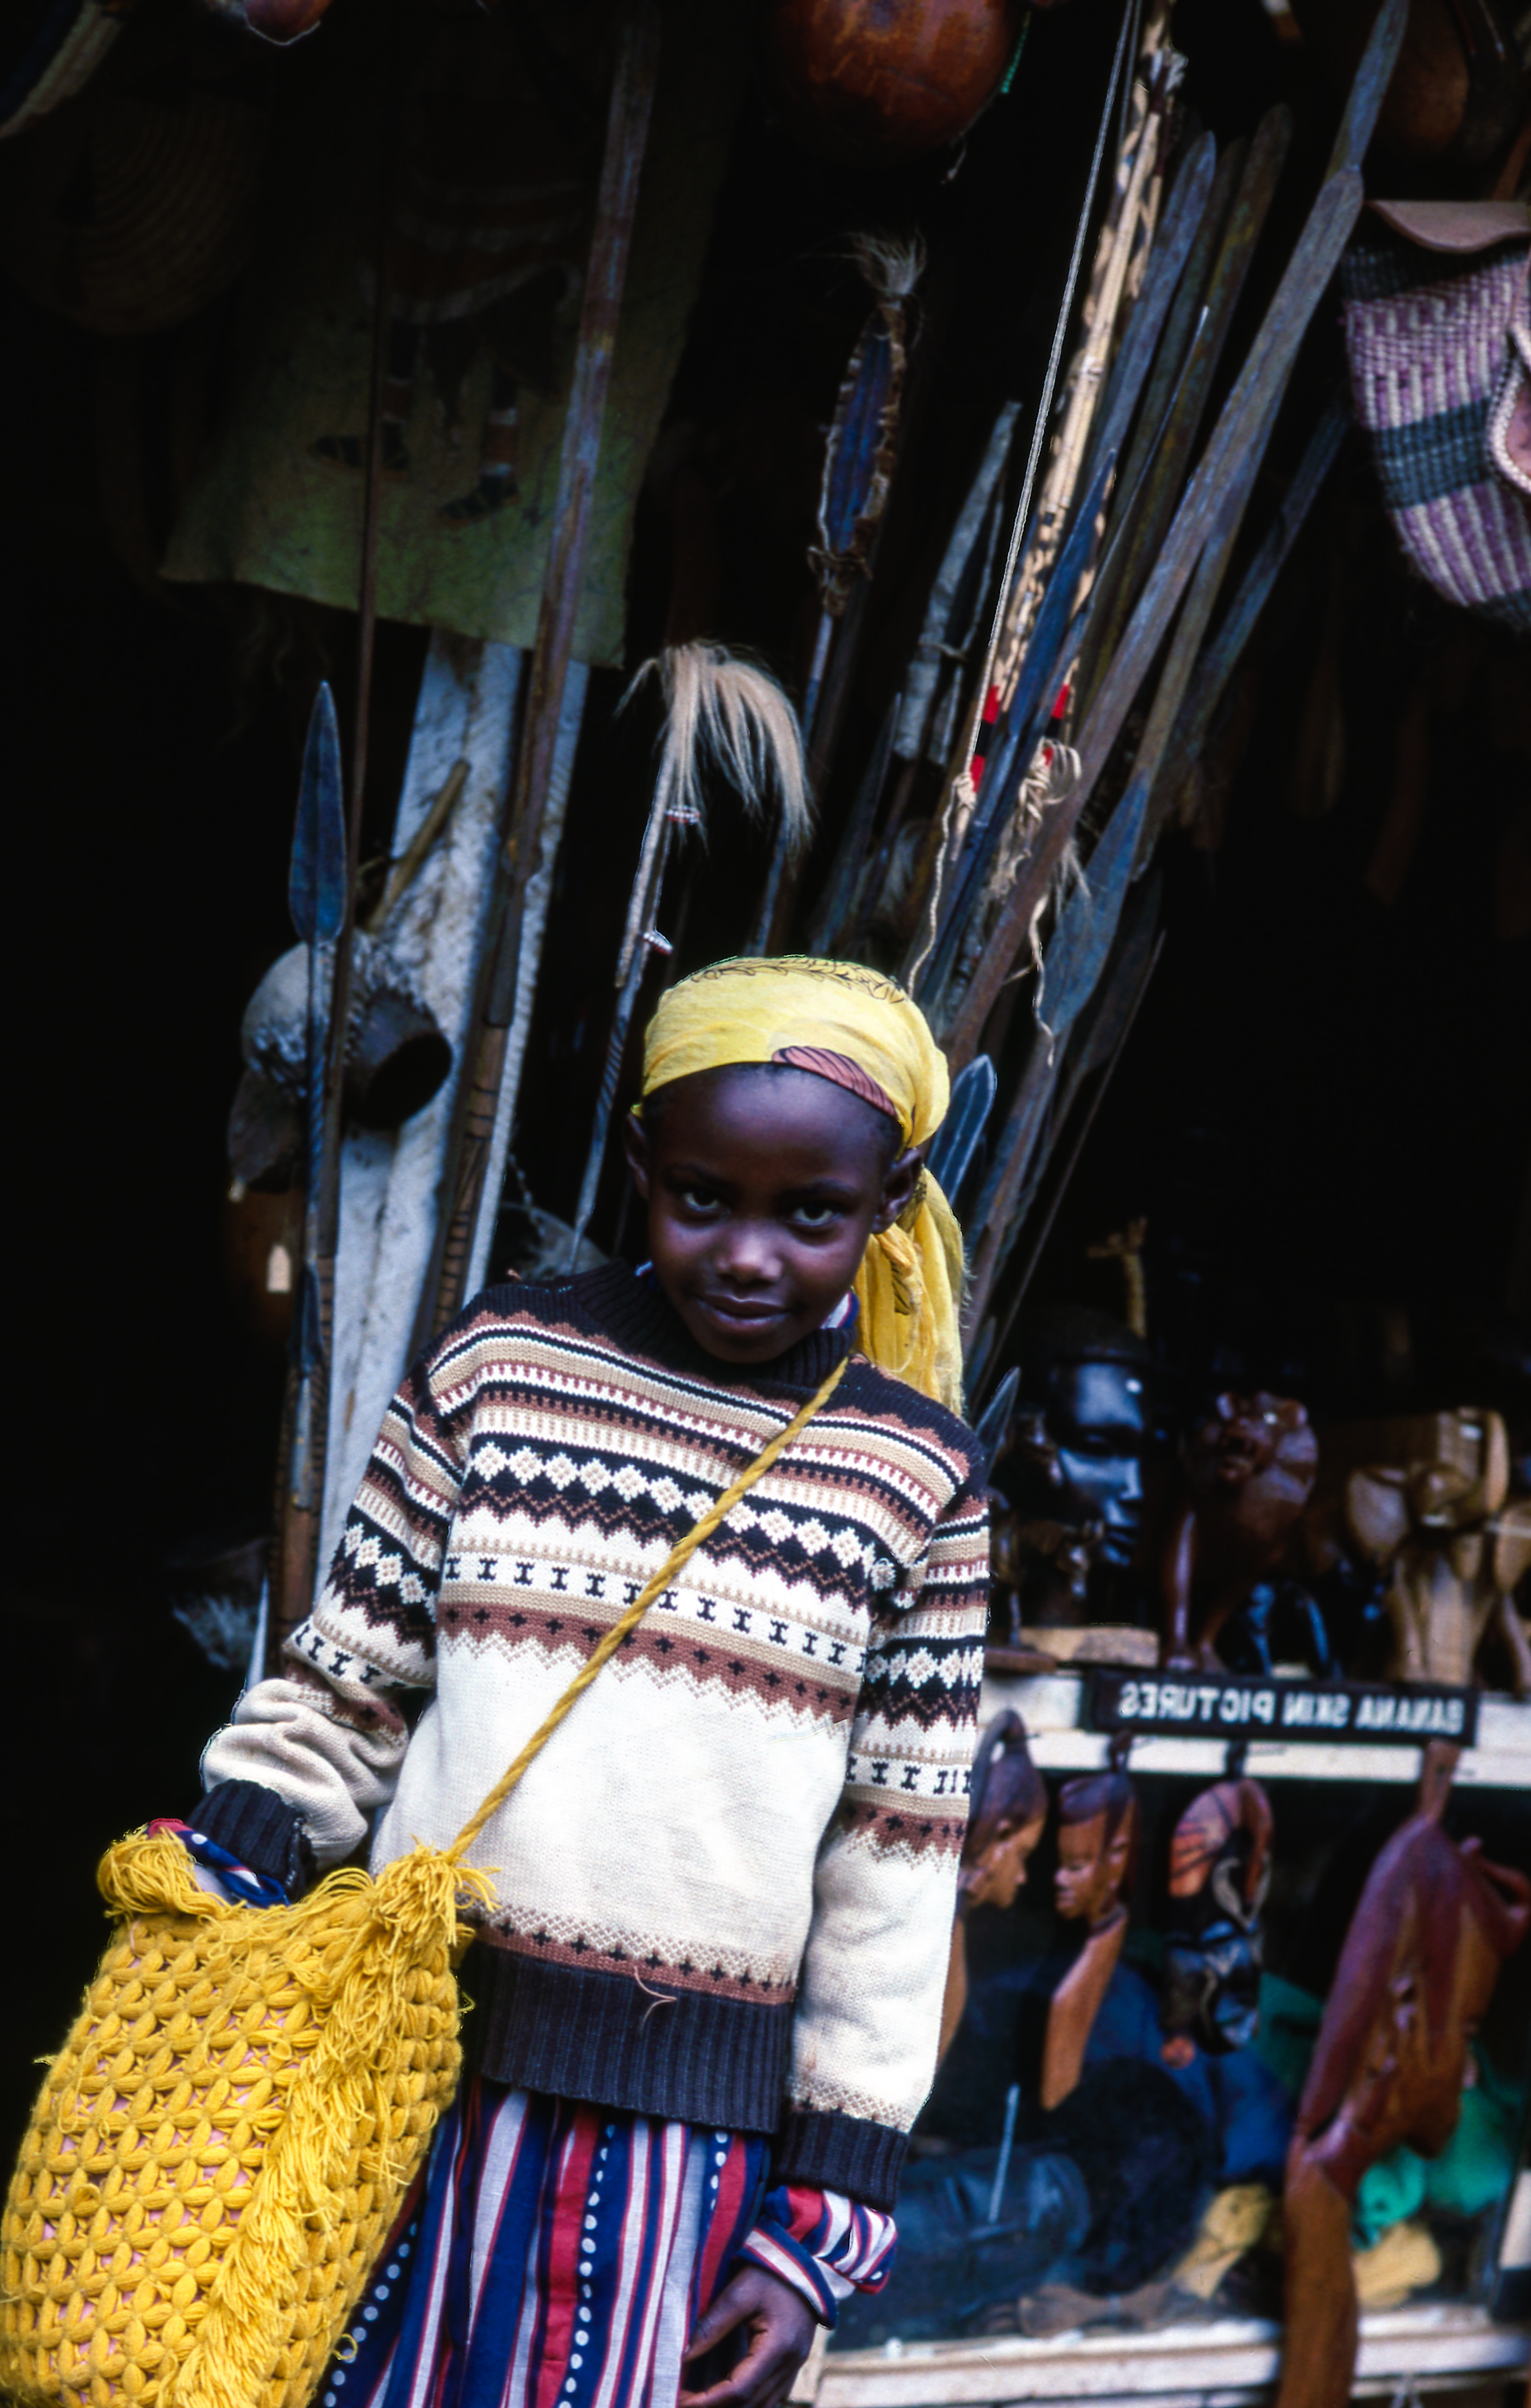 Child in a colorful outfit with a yellow bag at an outdoor market